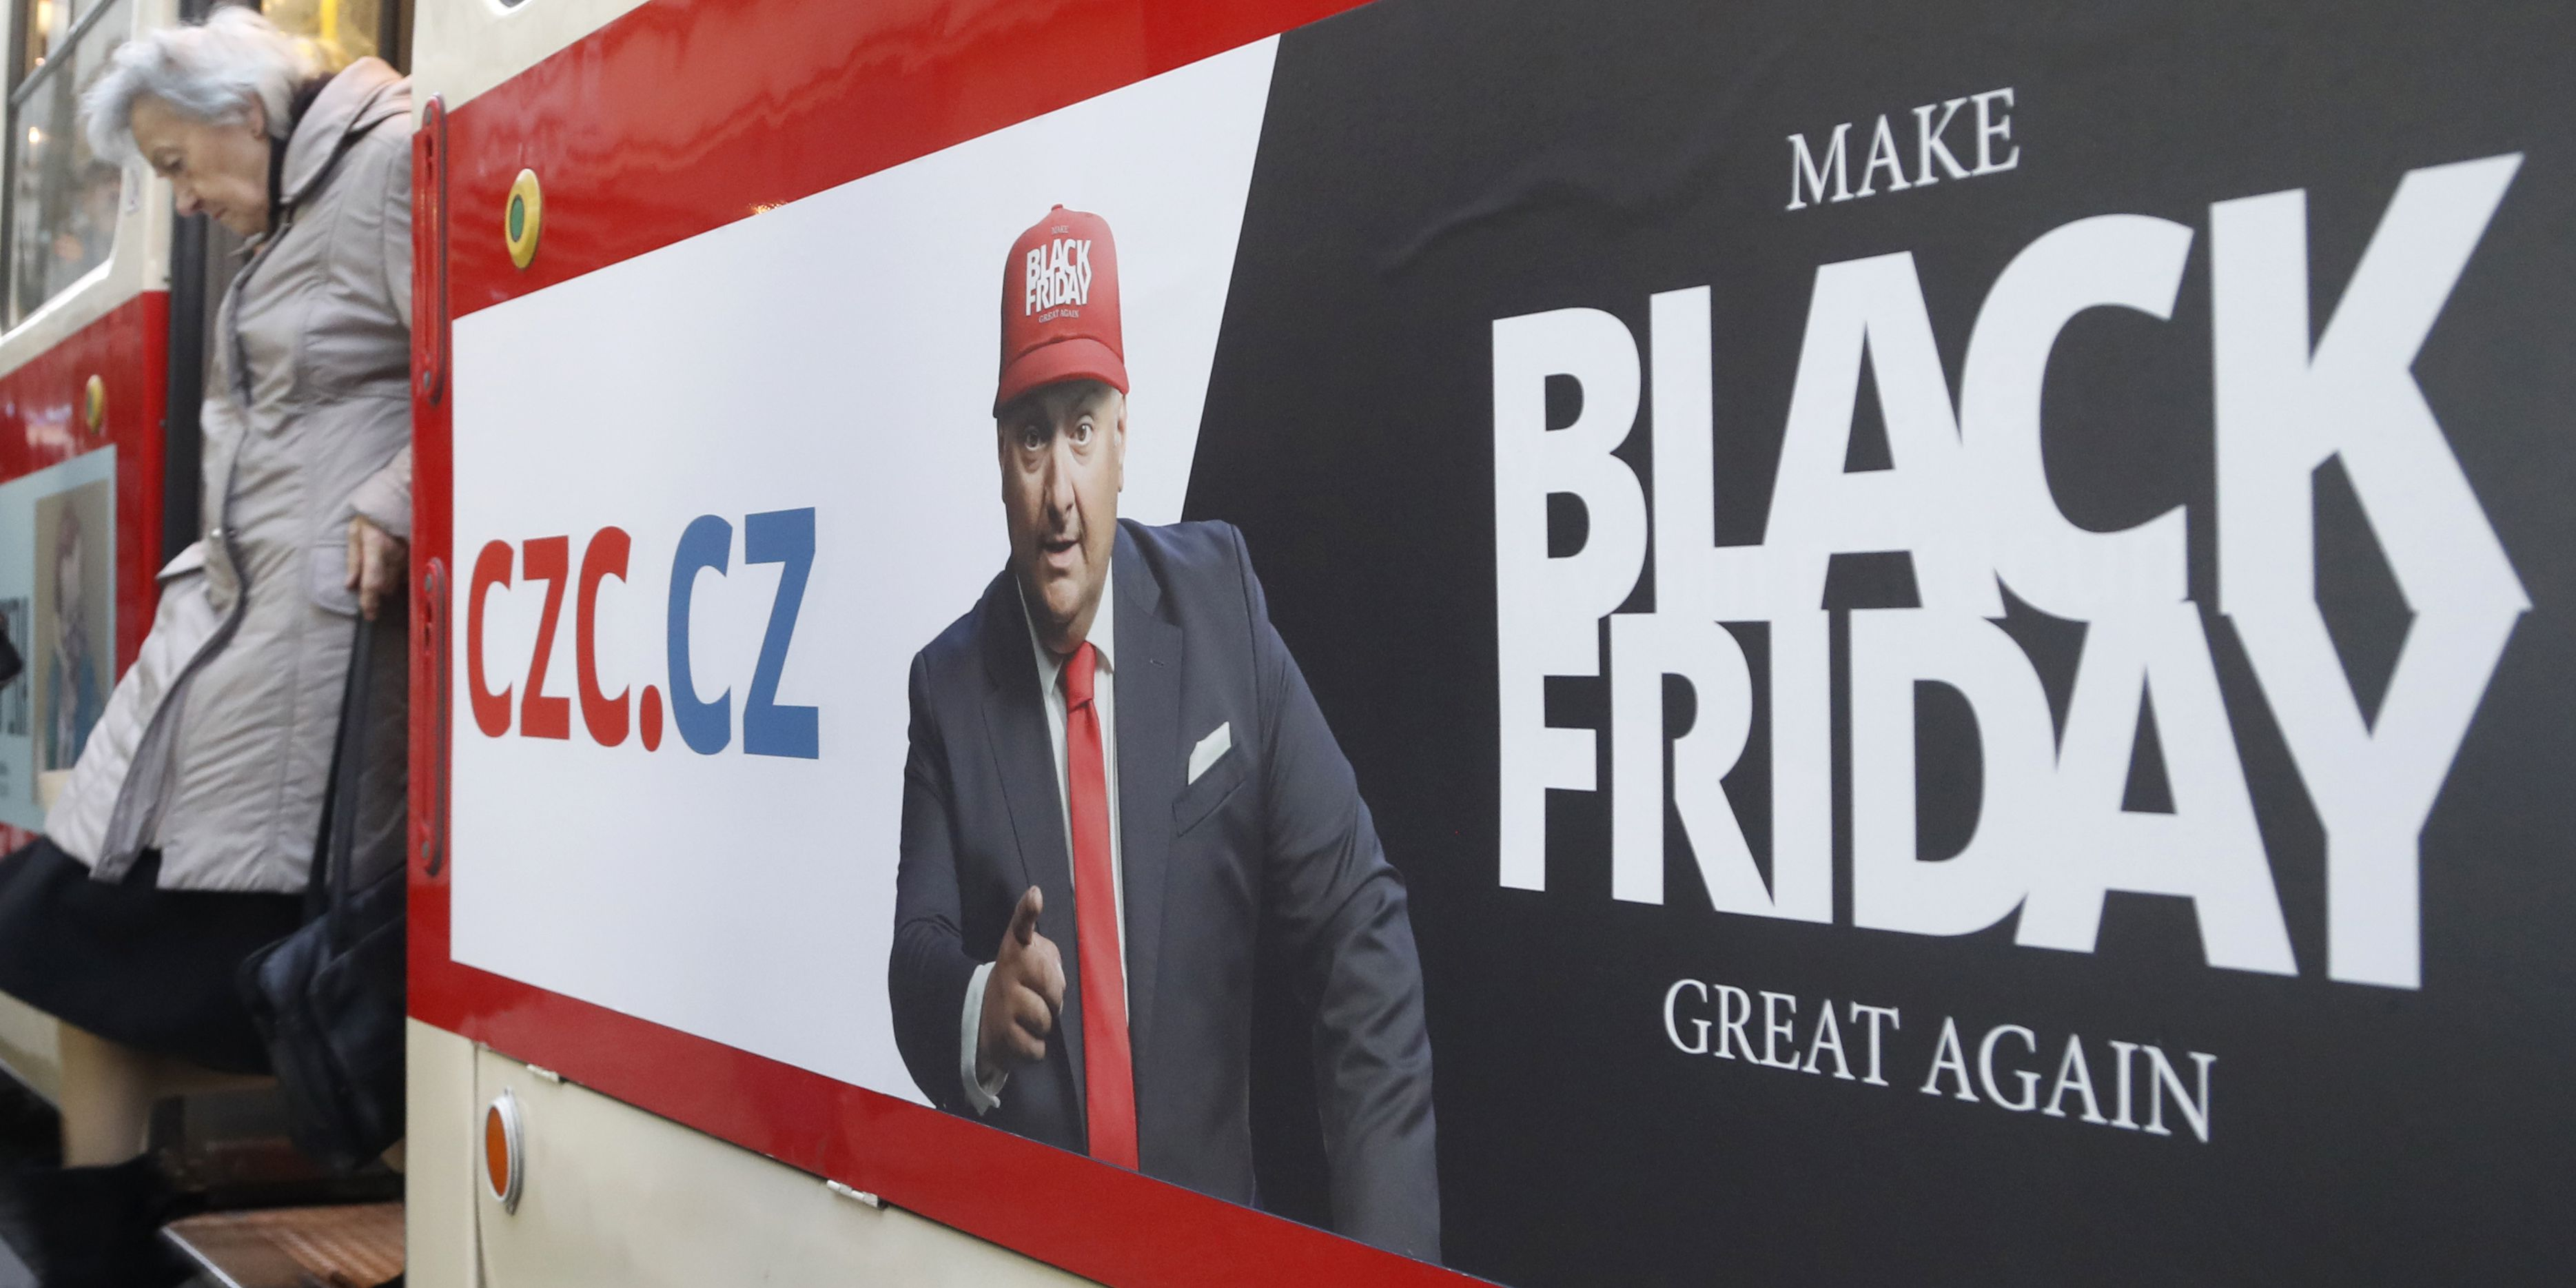 Ban Black Friday? French activists, lawmakers want to try